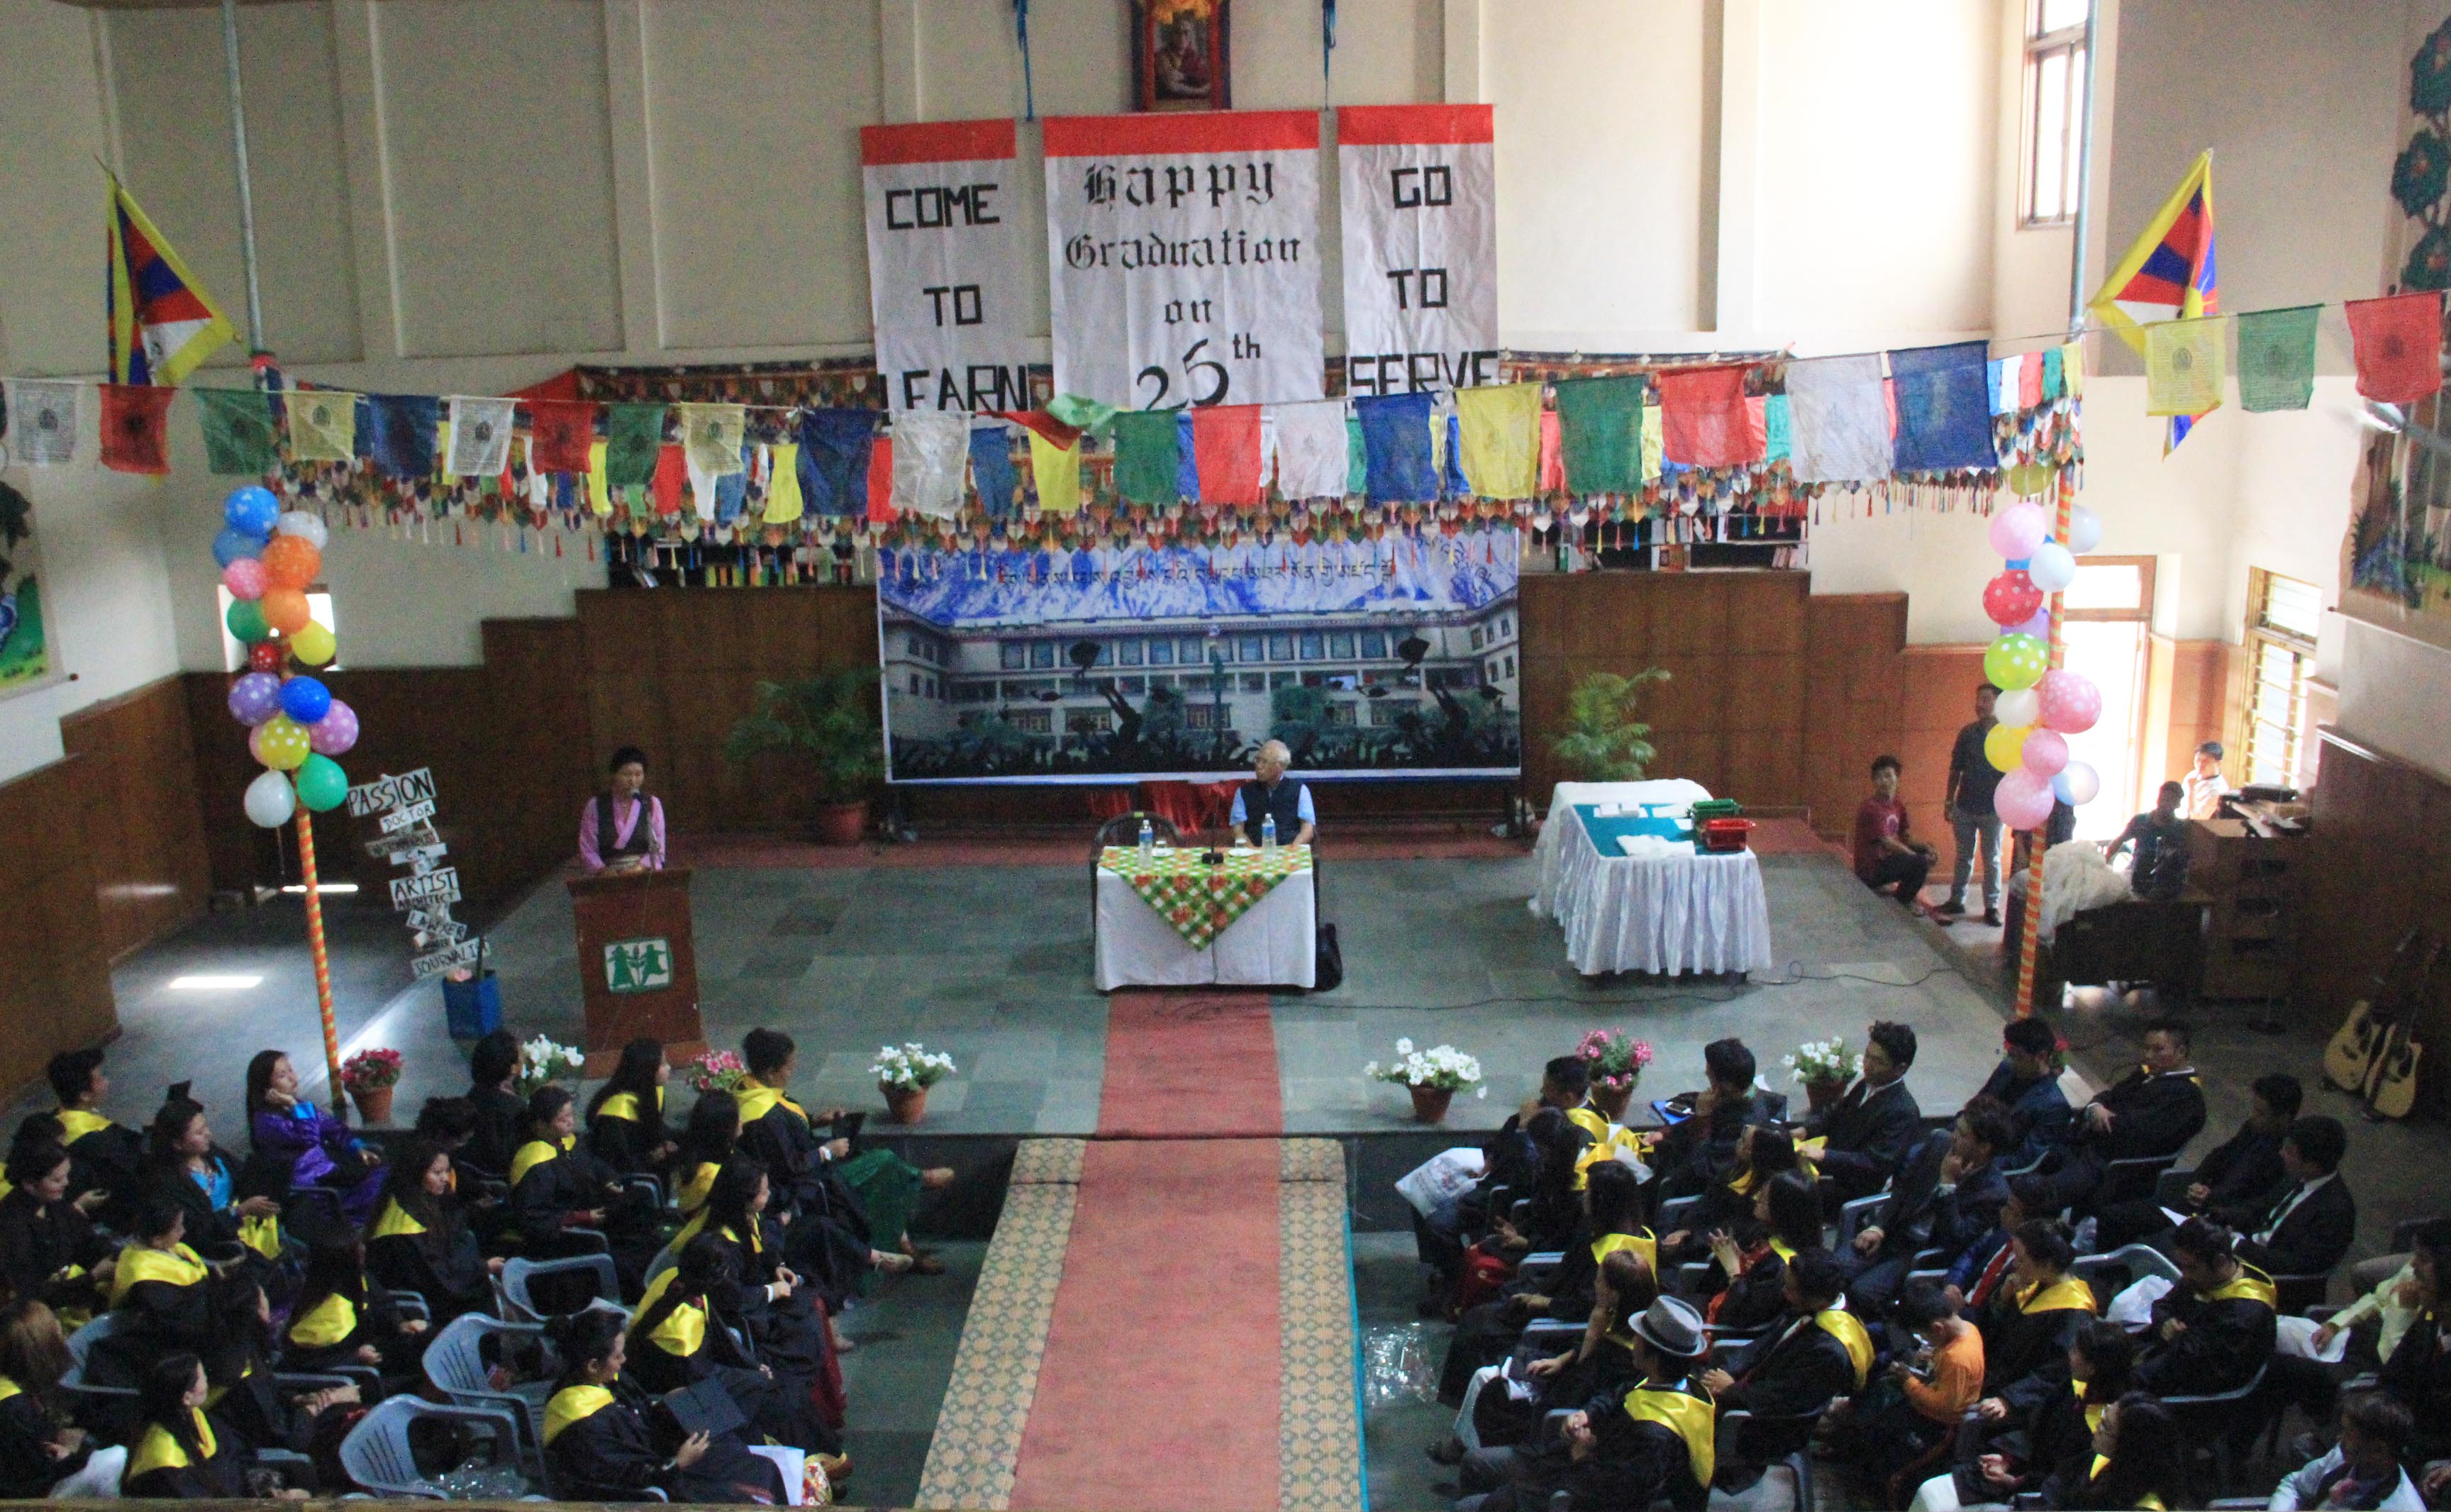 Tibetan SOS Youth Hostel in Rohini, northwest Delhi, observed the hostel's 25th anniversary on Mar 19. (Photo courtesy: SOSTYH)